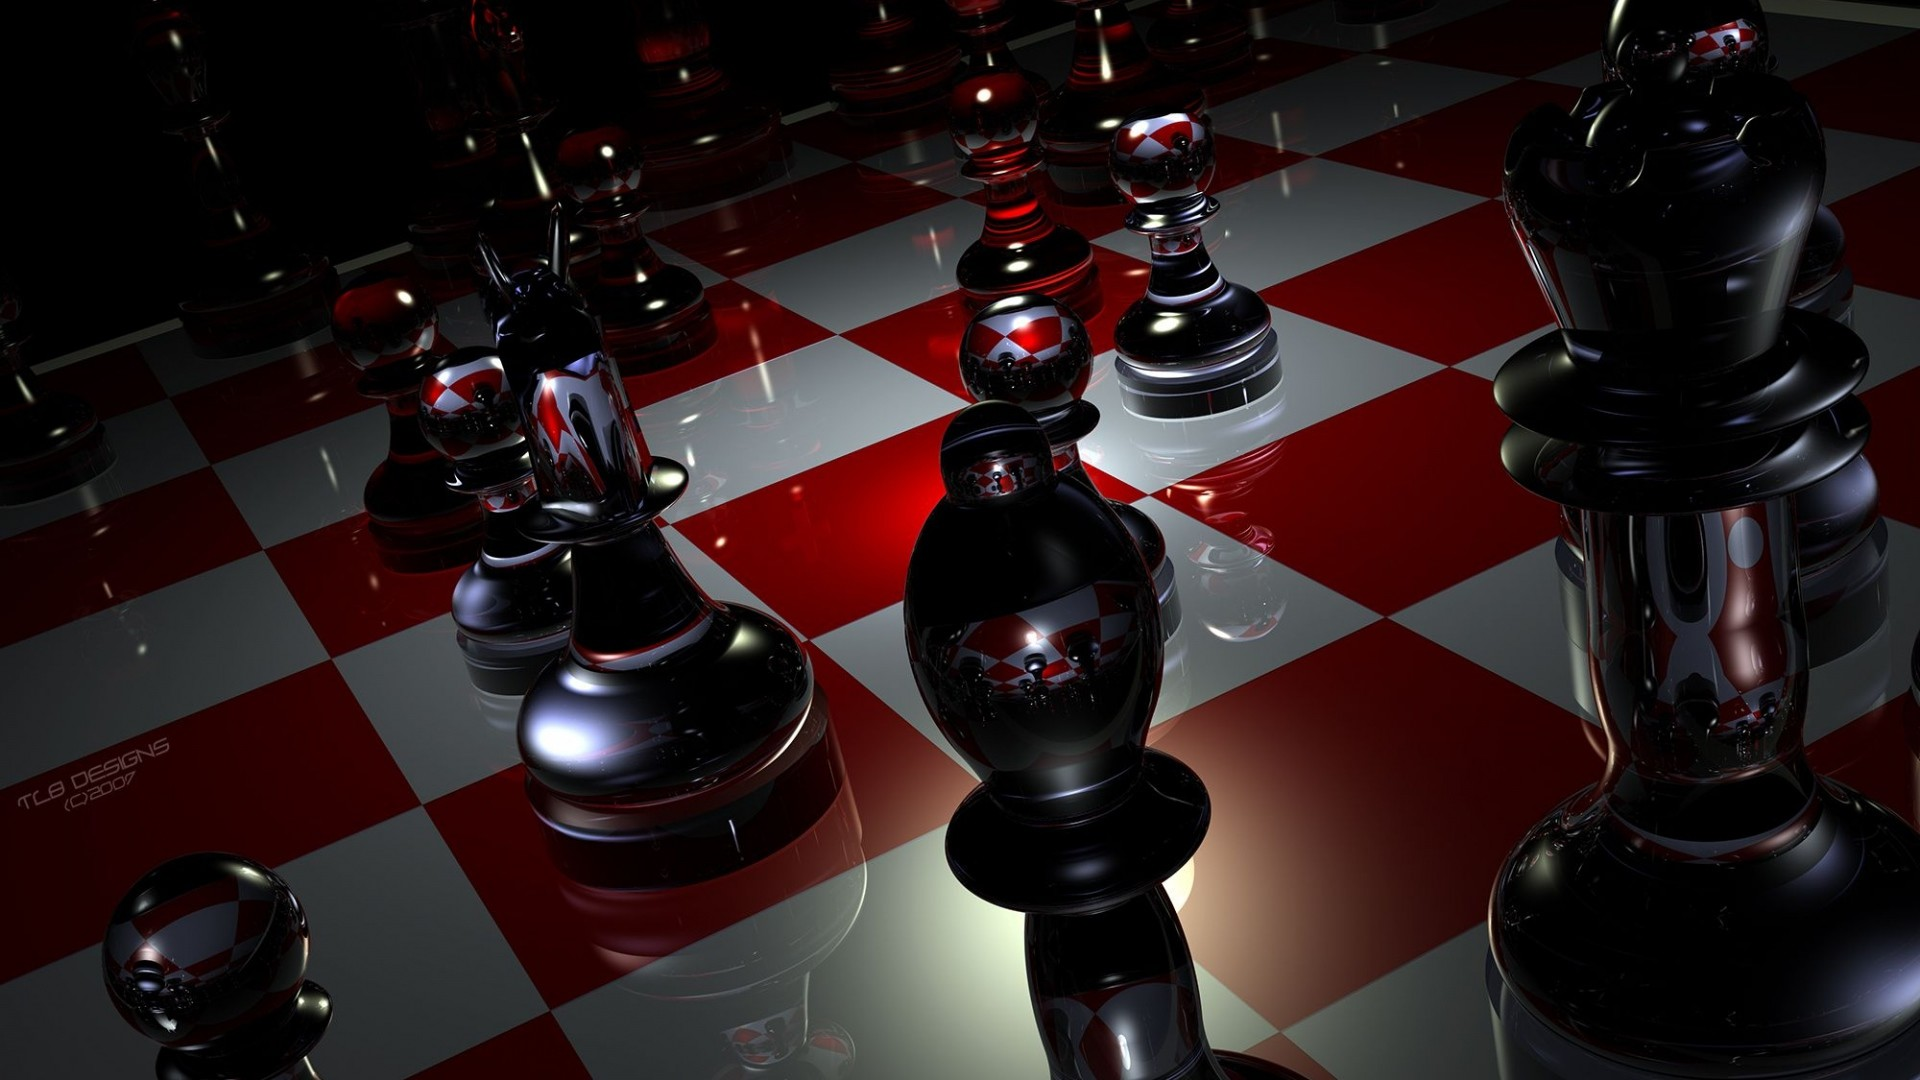 … Background Full HD 1080p. Wallpaper pieces, chess, boards,  glass